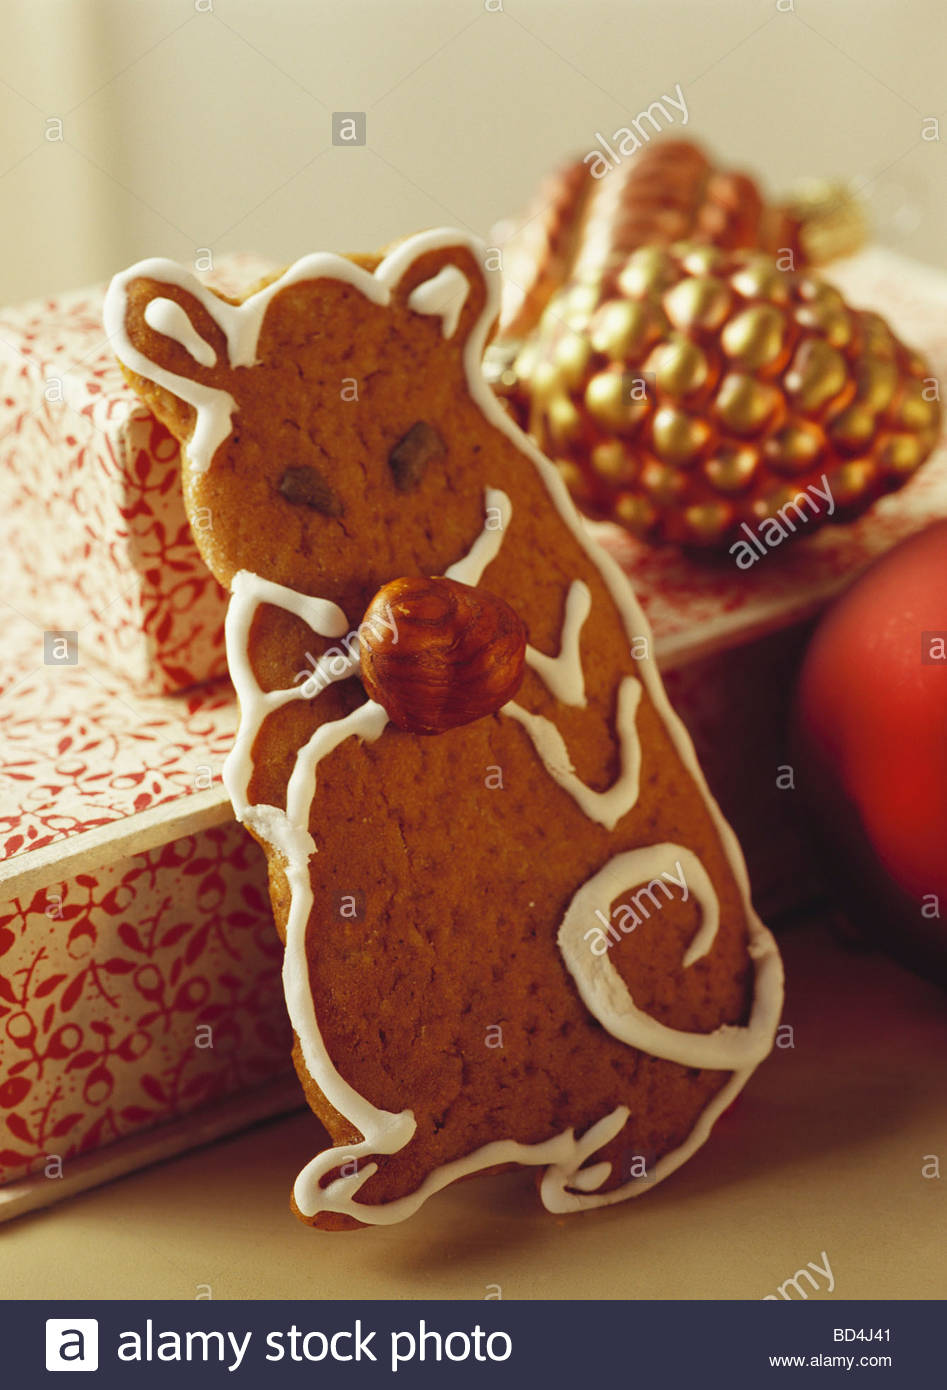 Gingerbread mouse in front of Christmas decorations